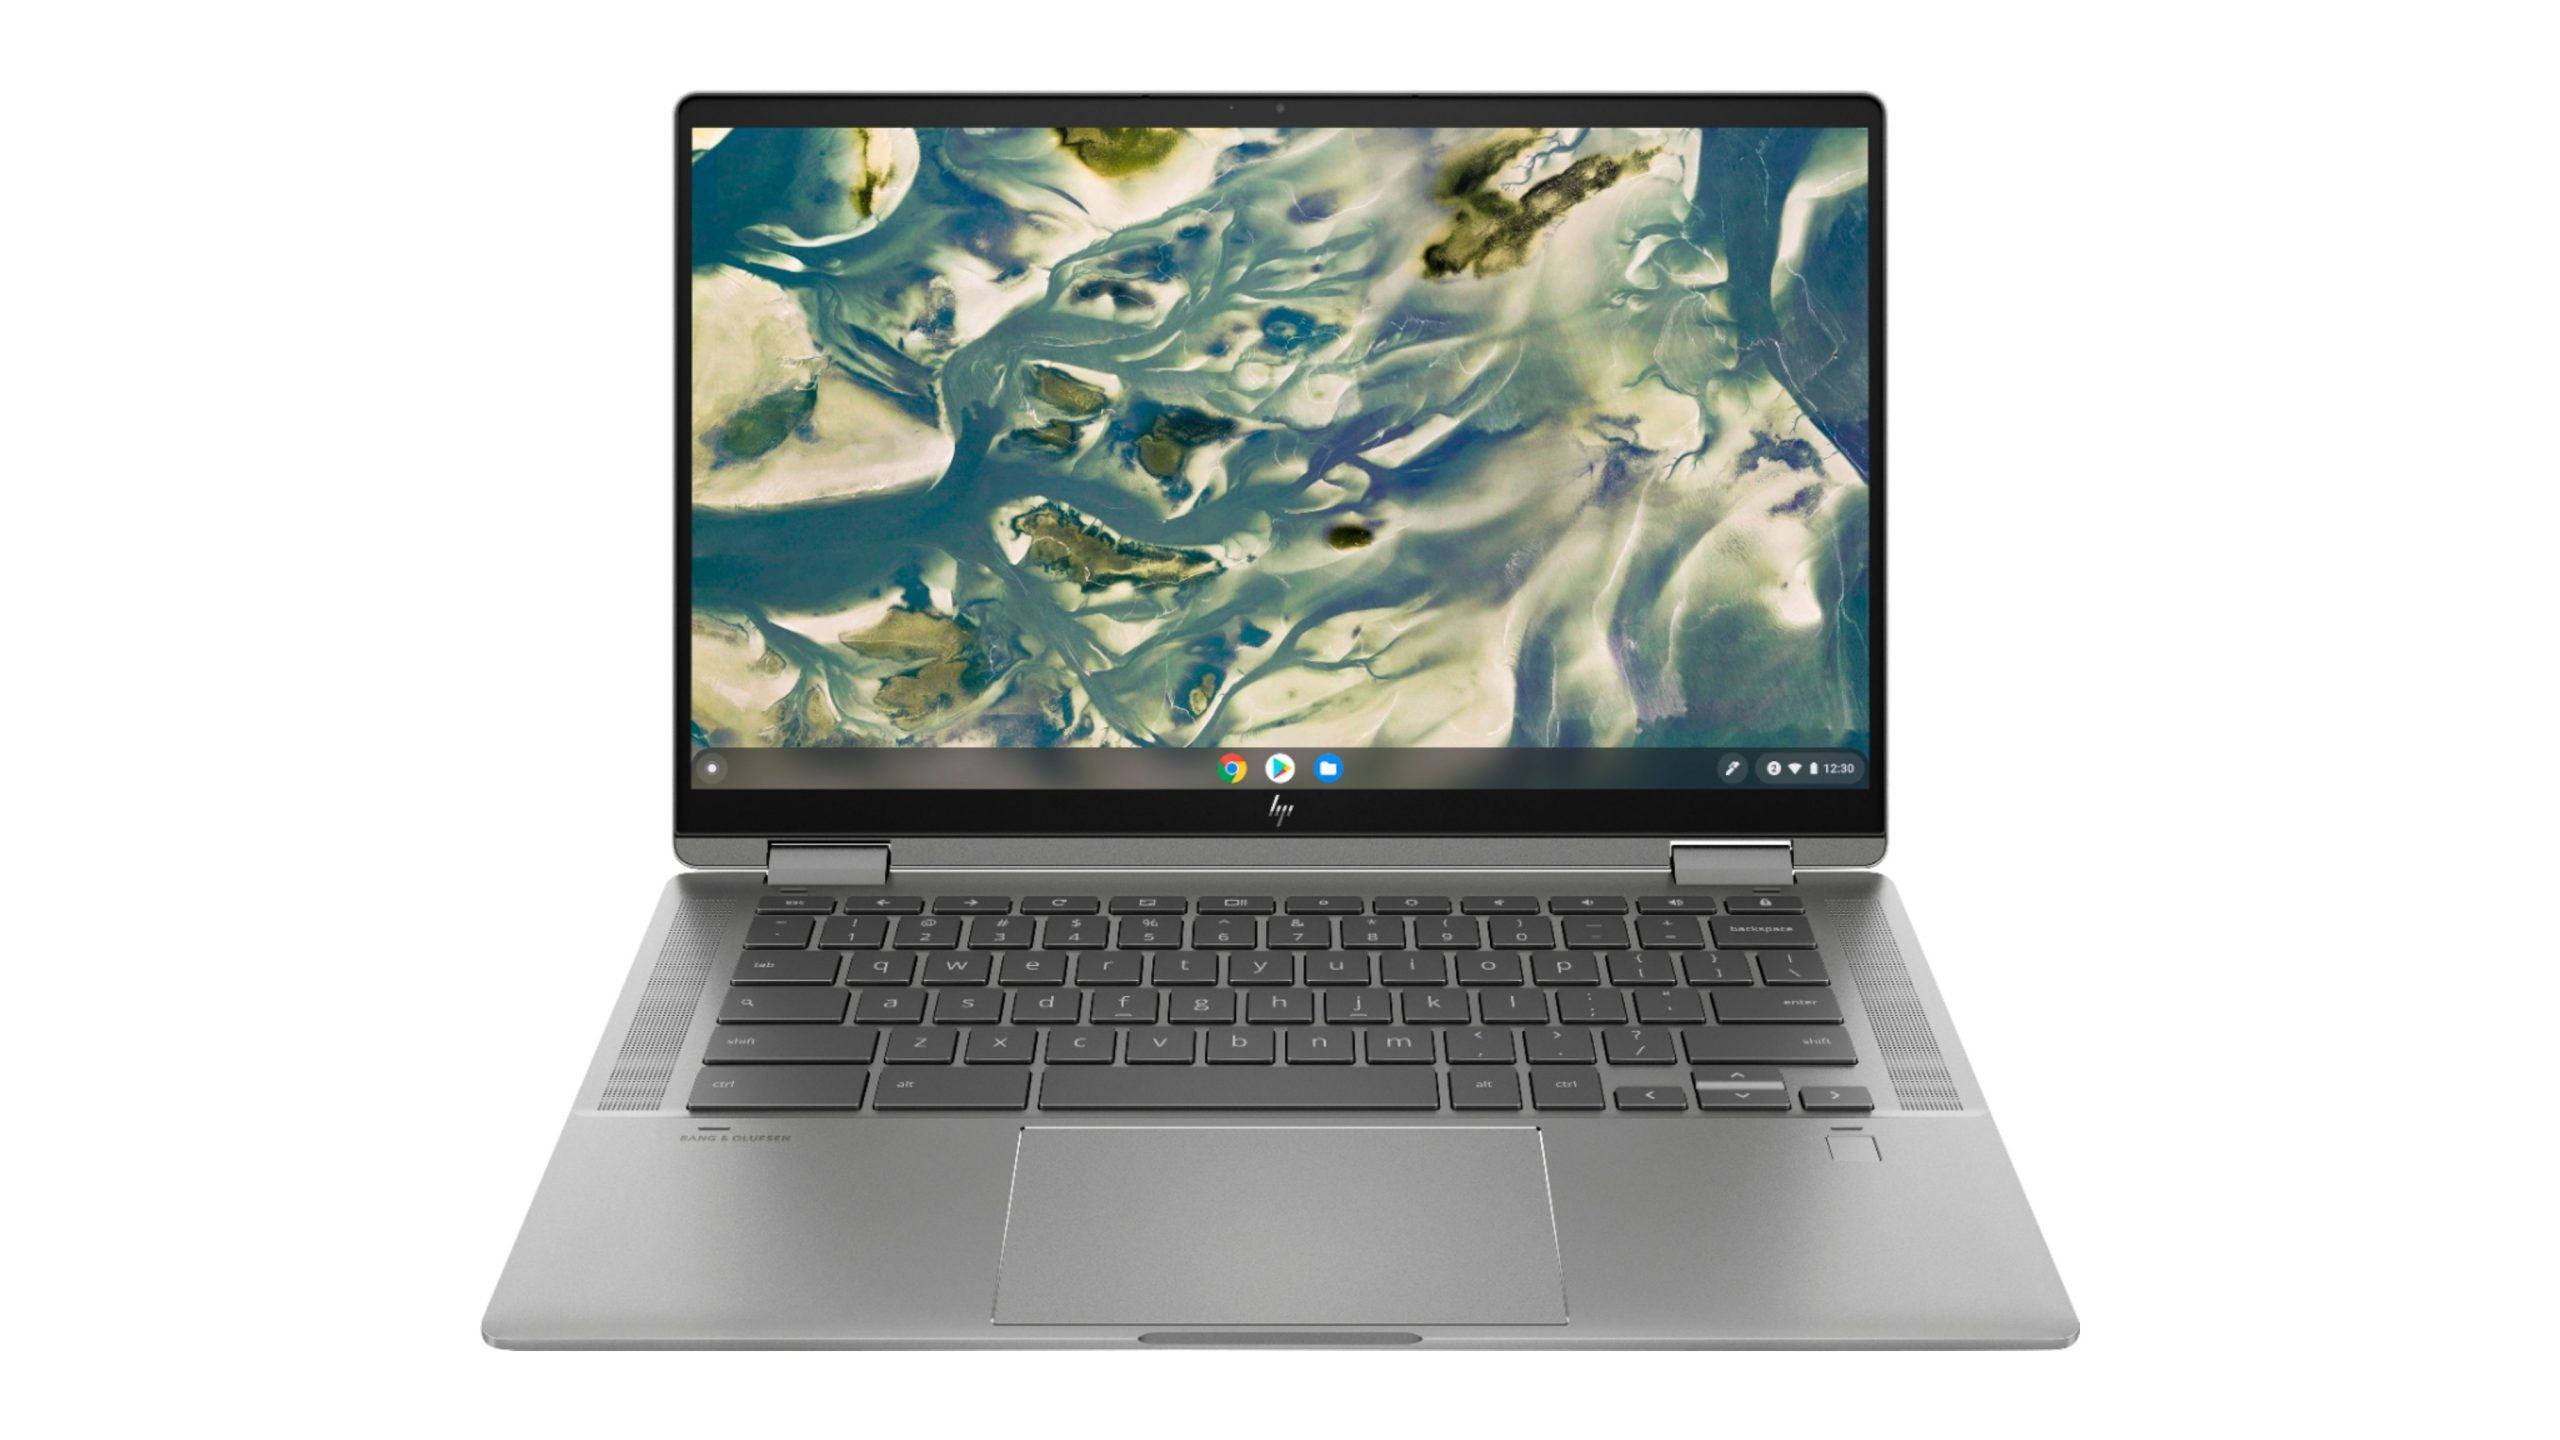 HP Chromebook x360 14c – Expected Specification And Features